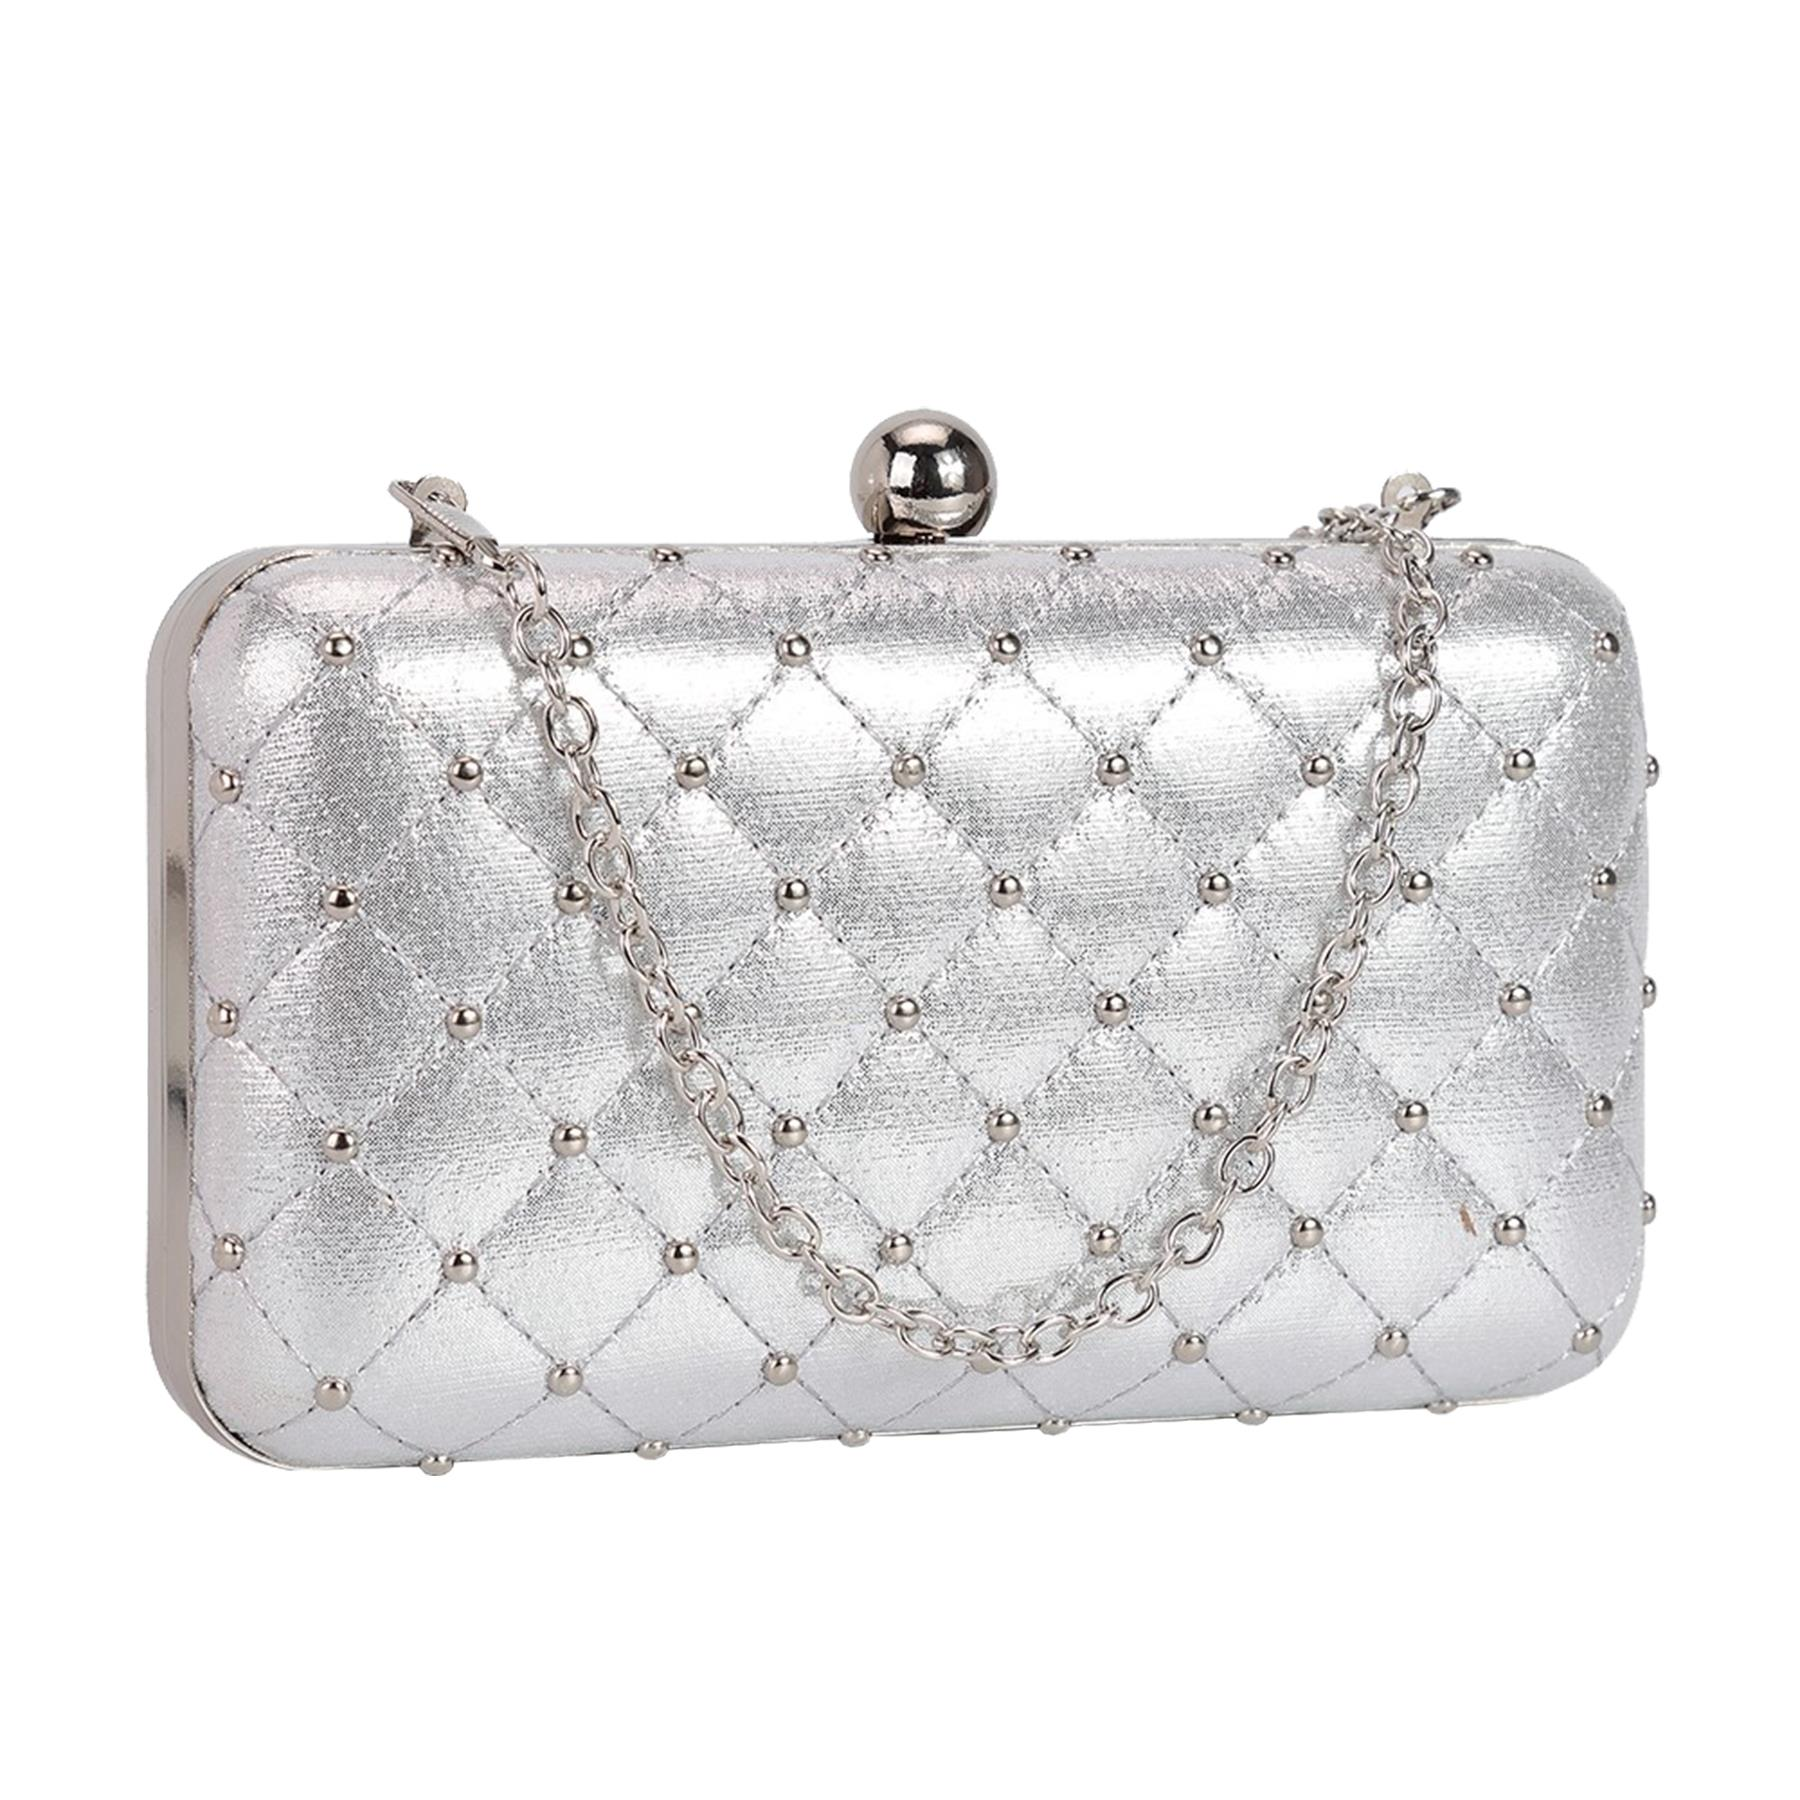 New-Women-s-Quilted-Studded-Faux-Leather-Party-Bridal-Prom-Box-Clutch-Bag thumbnail 12